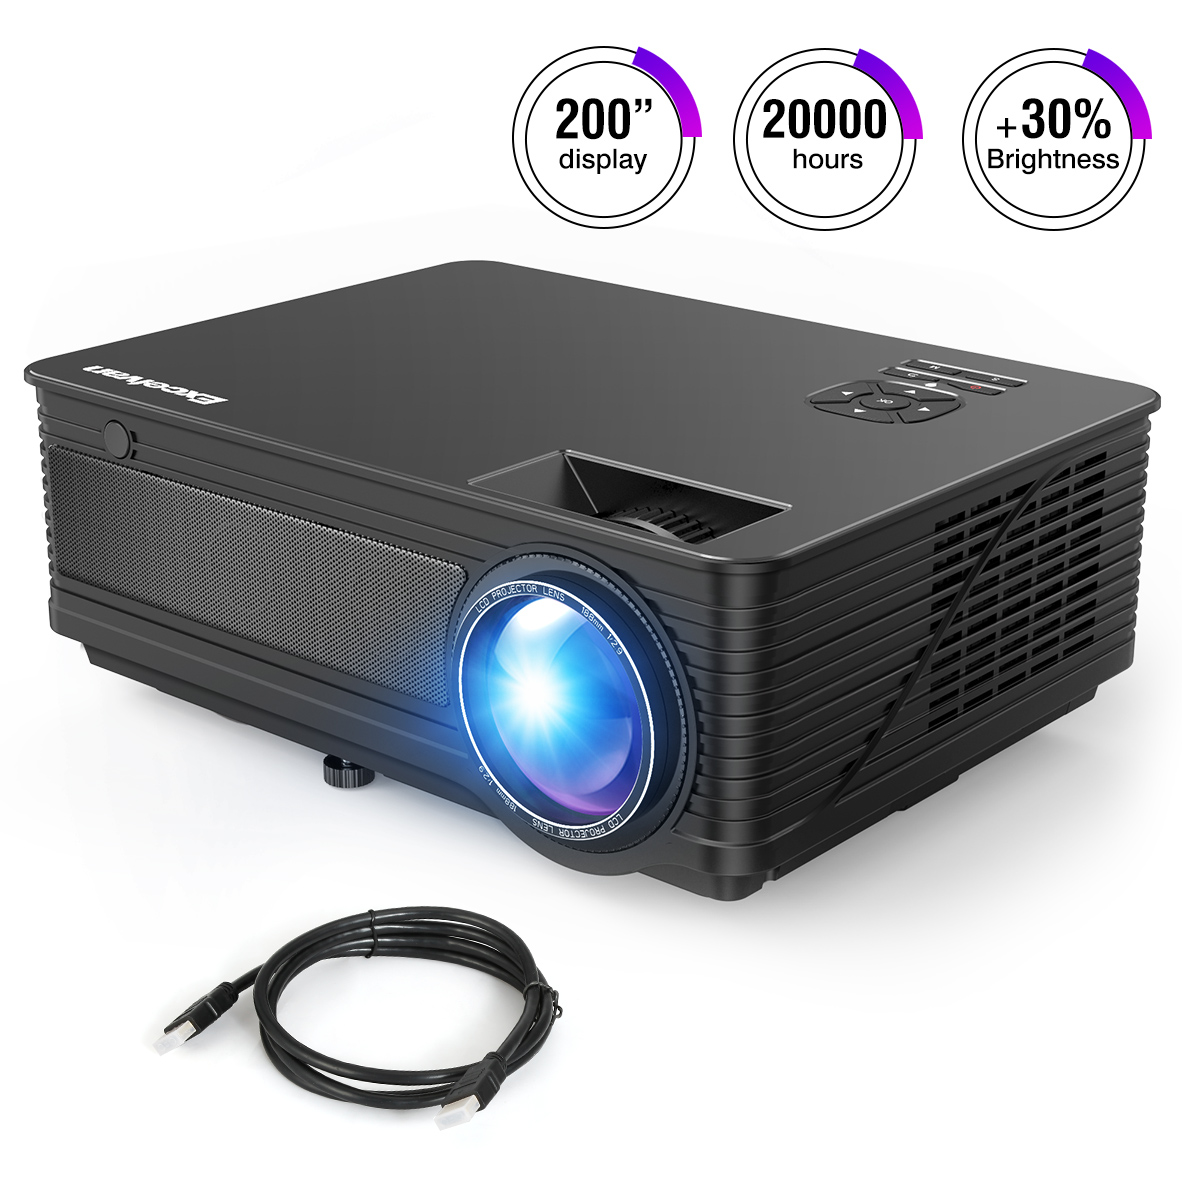 Excelvan M5 3500 Lumen LED Full HD Projector Home Cinema TV 3D